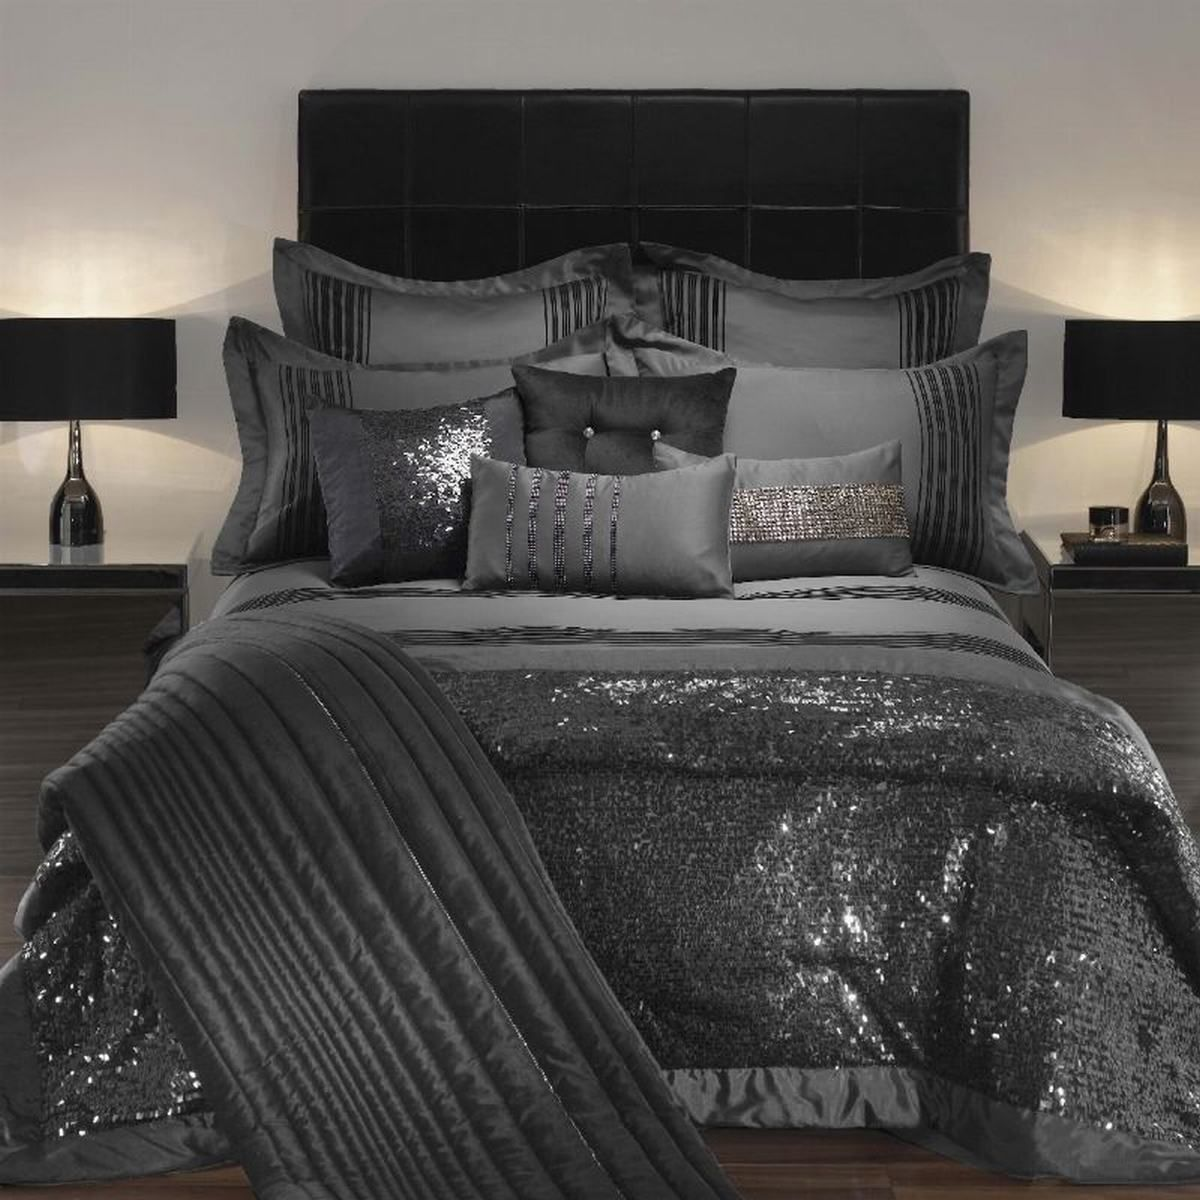 Luxury Bed Set Trends 2014 Bed Sets Luxury And Bedrooms